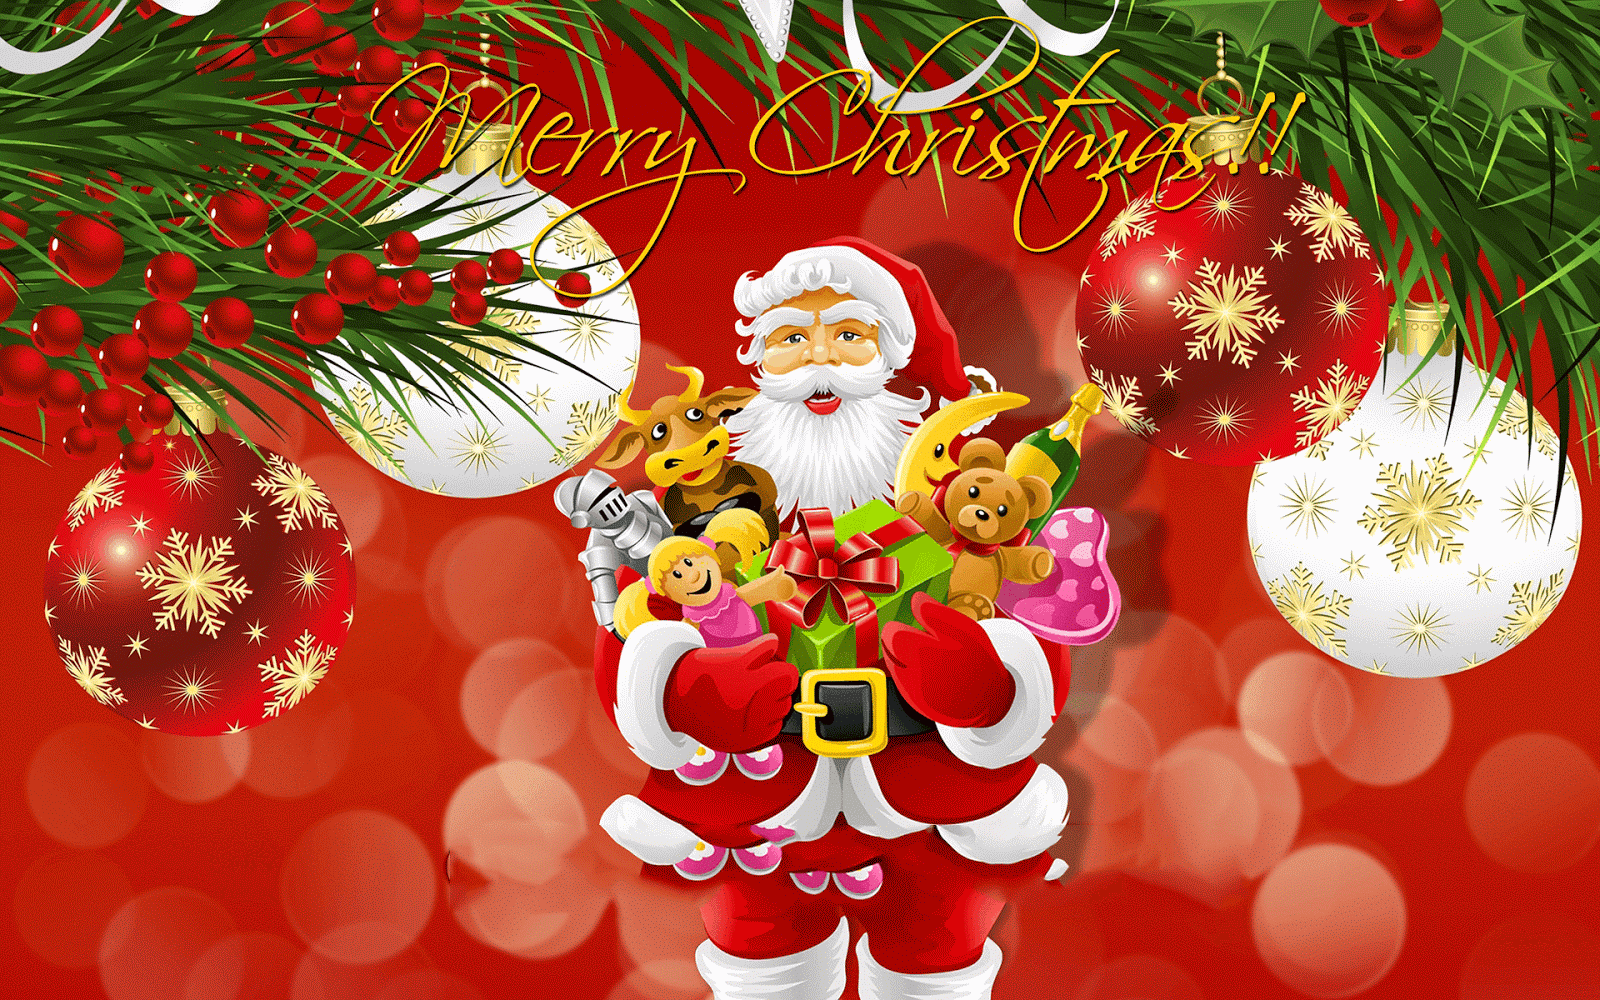 Happy Christmas Day 2019 Hd Wallpapers